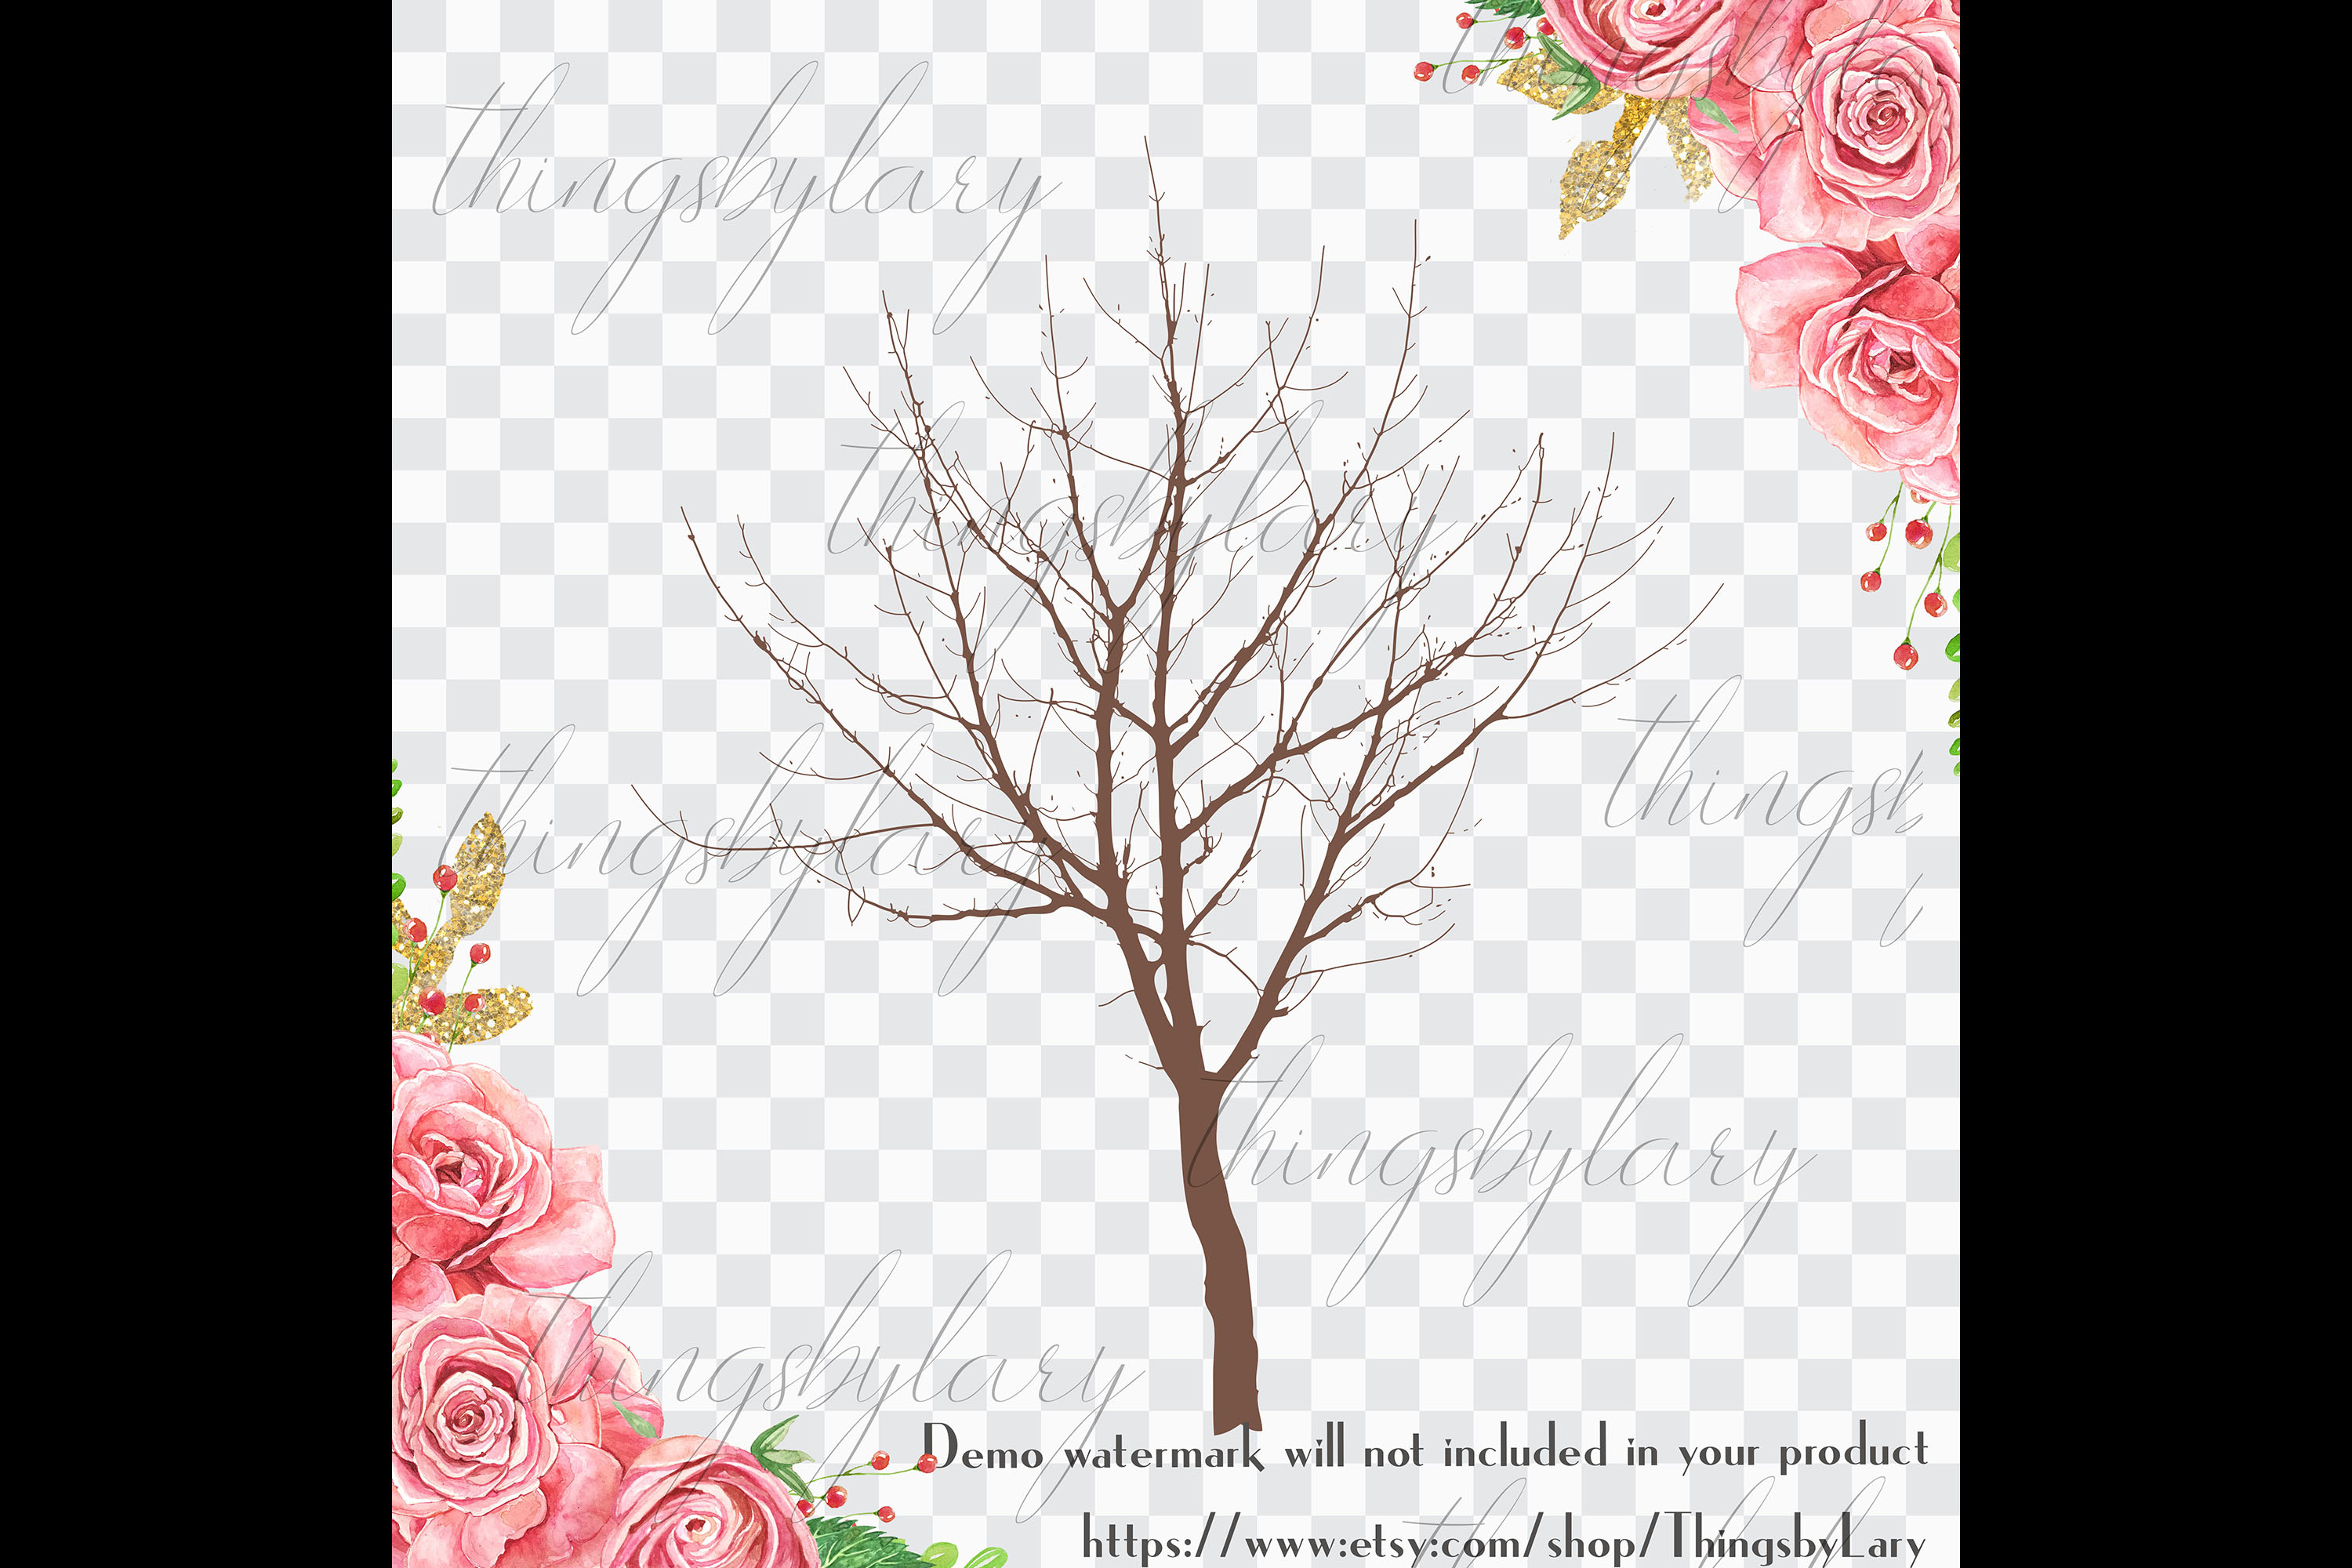 256 Winter Tree Branch Silhouette Wedding PNG Digital Images example image 2